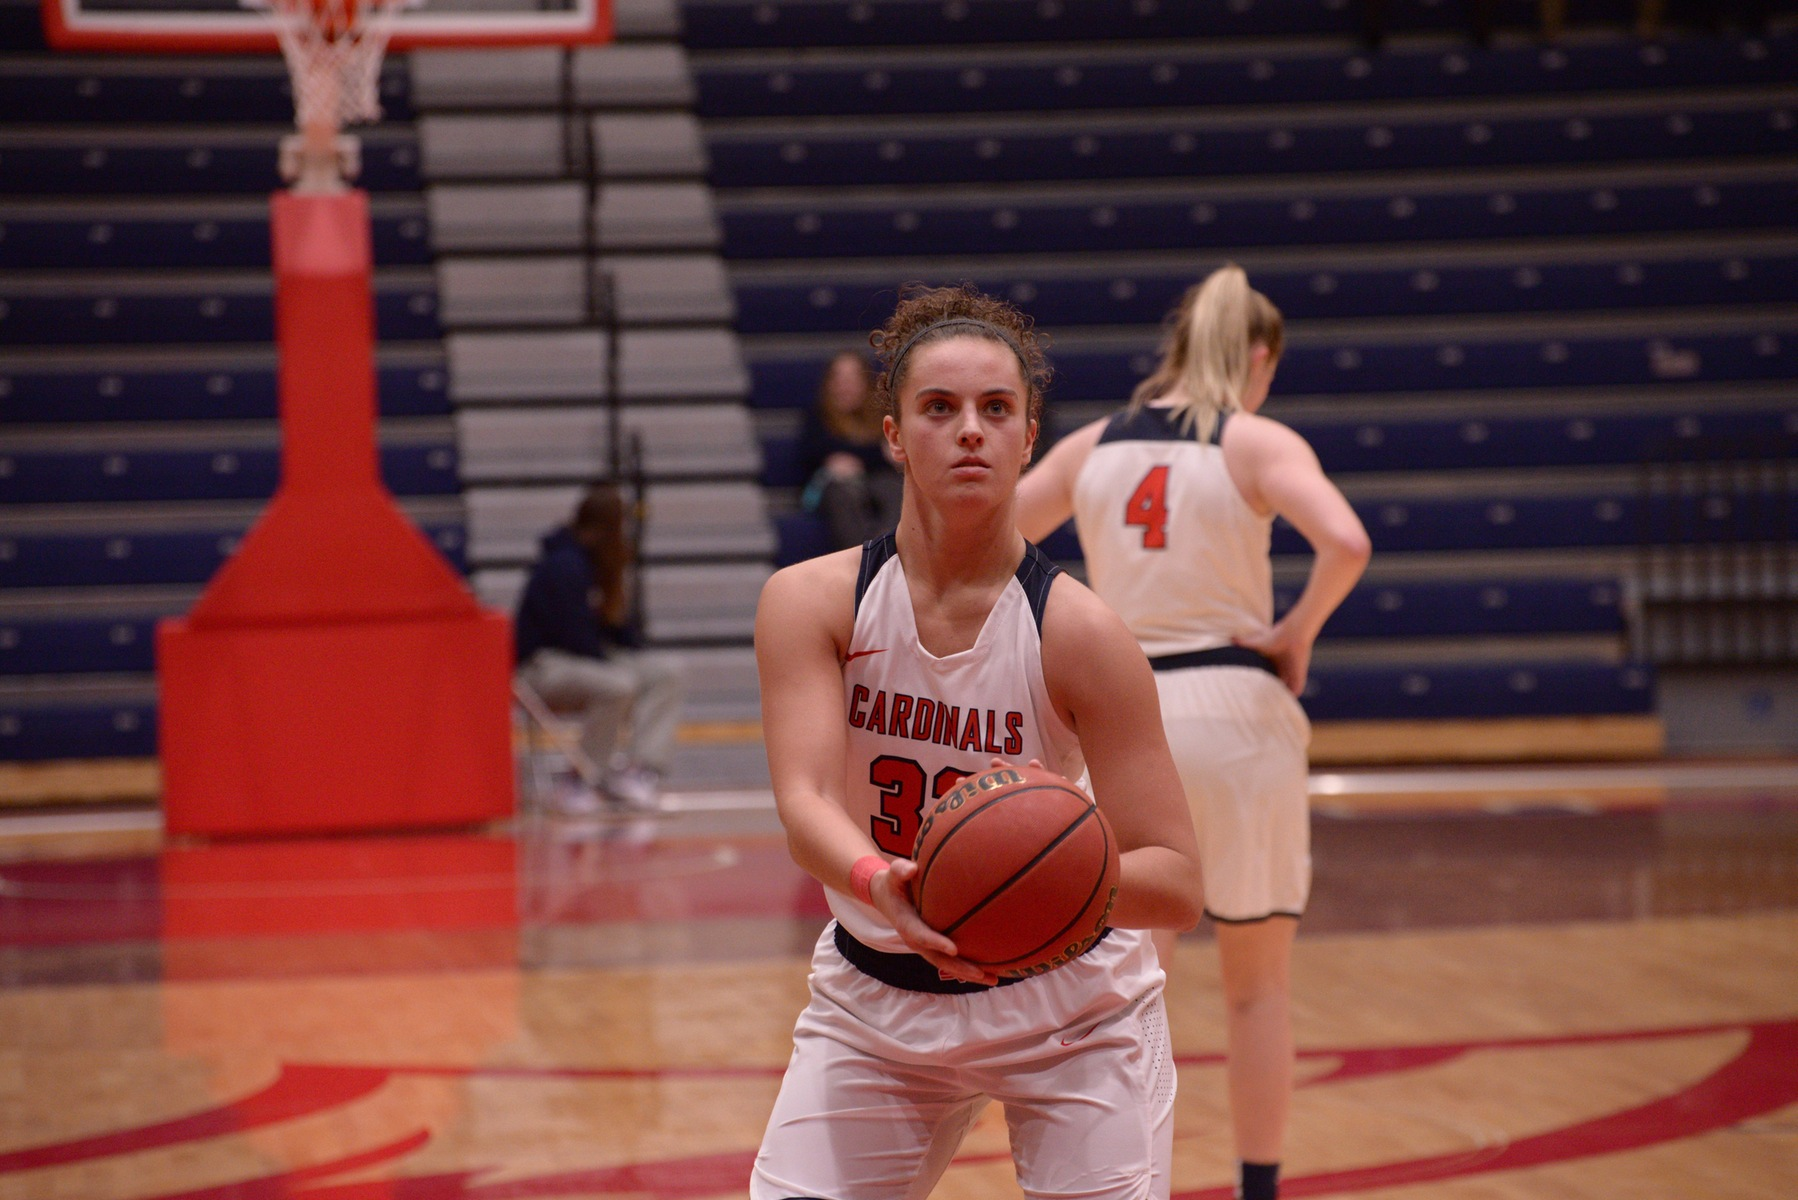 Duffy's 41 points and 16 rebounds lead Cardinals to victory at LSSU